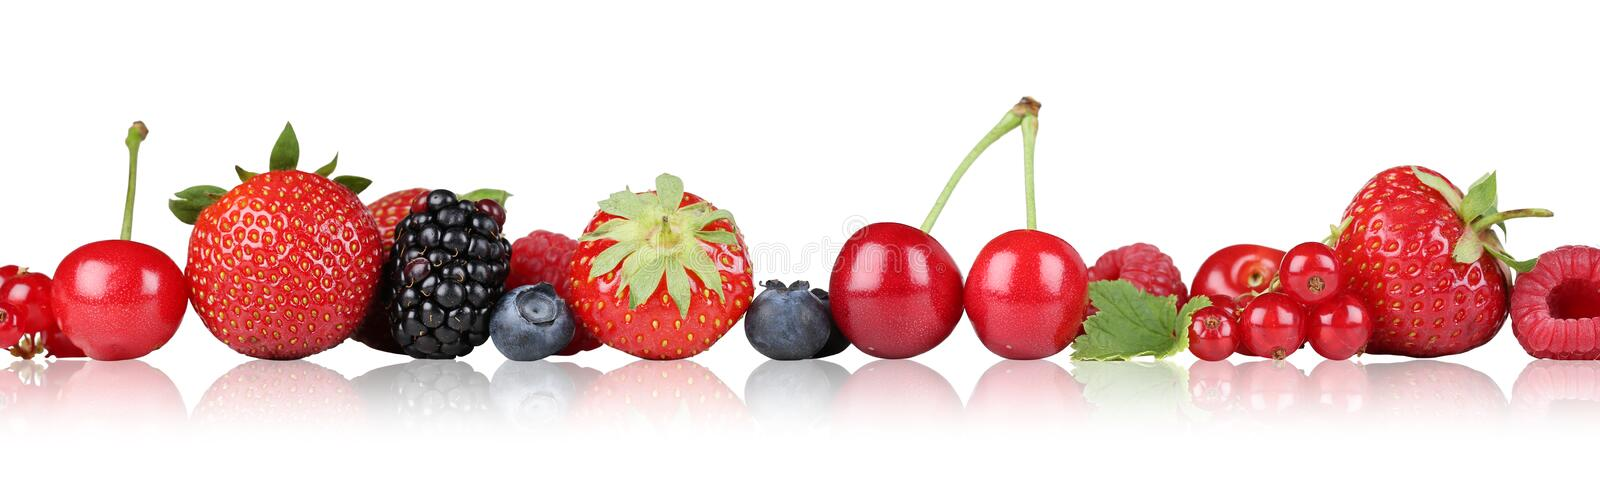 Berry fruits border strawberry raspberry, cherries in a row isolated stock image